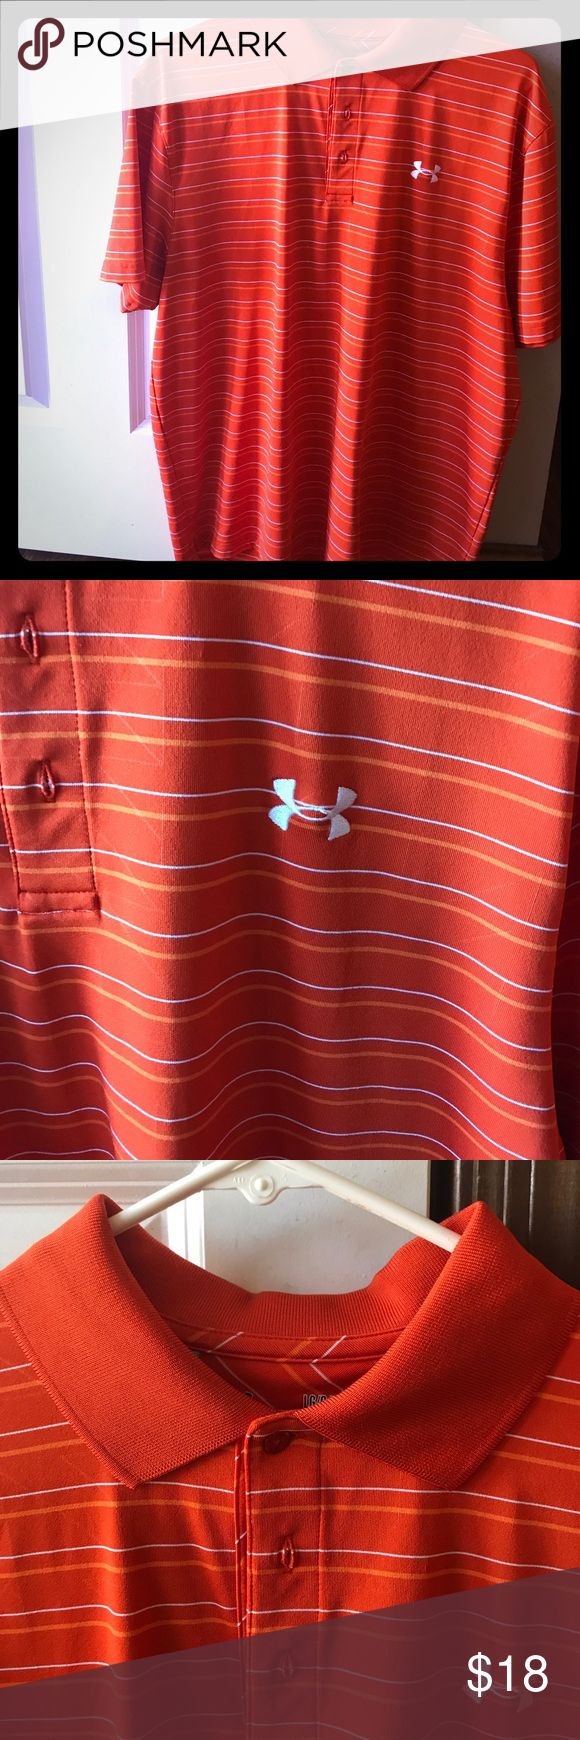 Men's Under Armour Golf Shirt Large orange and white striped Under Armour golf shirt. Only worn once. Perfect for a golf outing or a picnic. Great quality!! Bundle with other items for a bigger discount!! Under Armour Shirts Casual Button Down Shirts